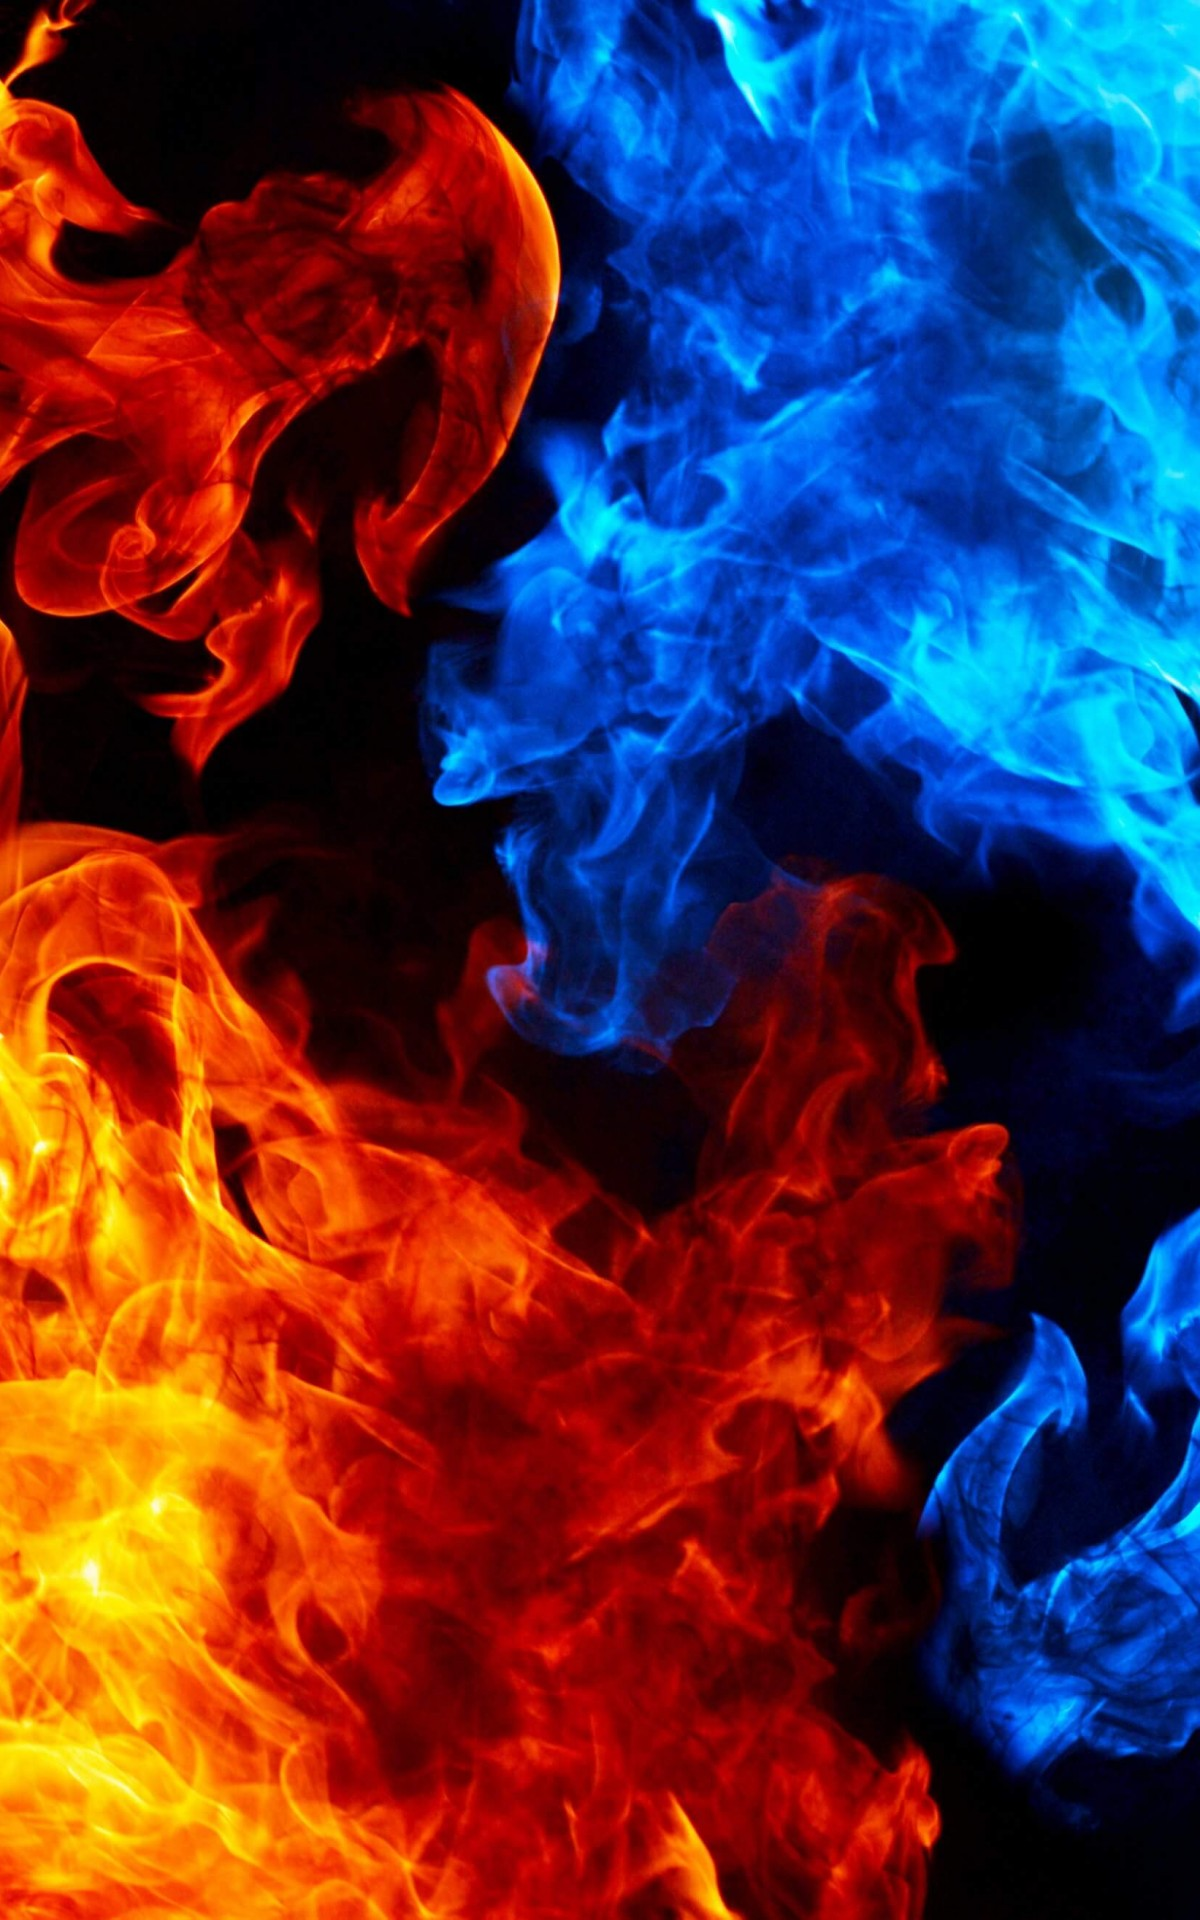 Blue And Red Fire Wallpaper for Amazon Kindle Fire HDX 1200x1920